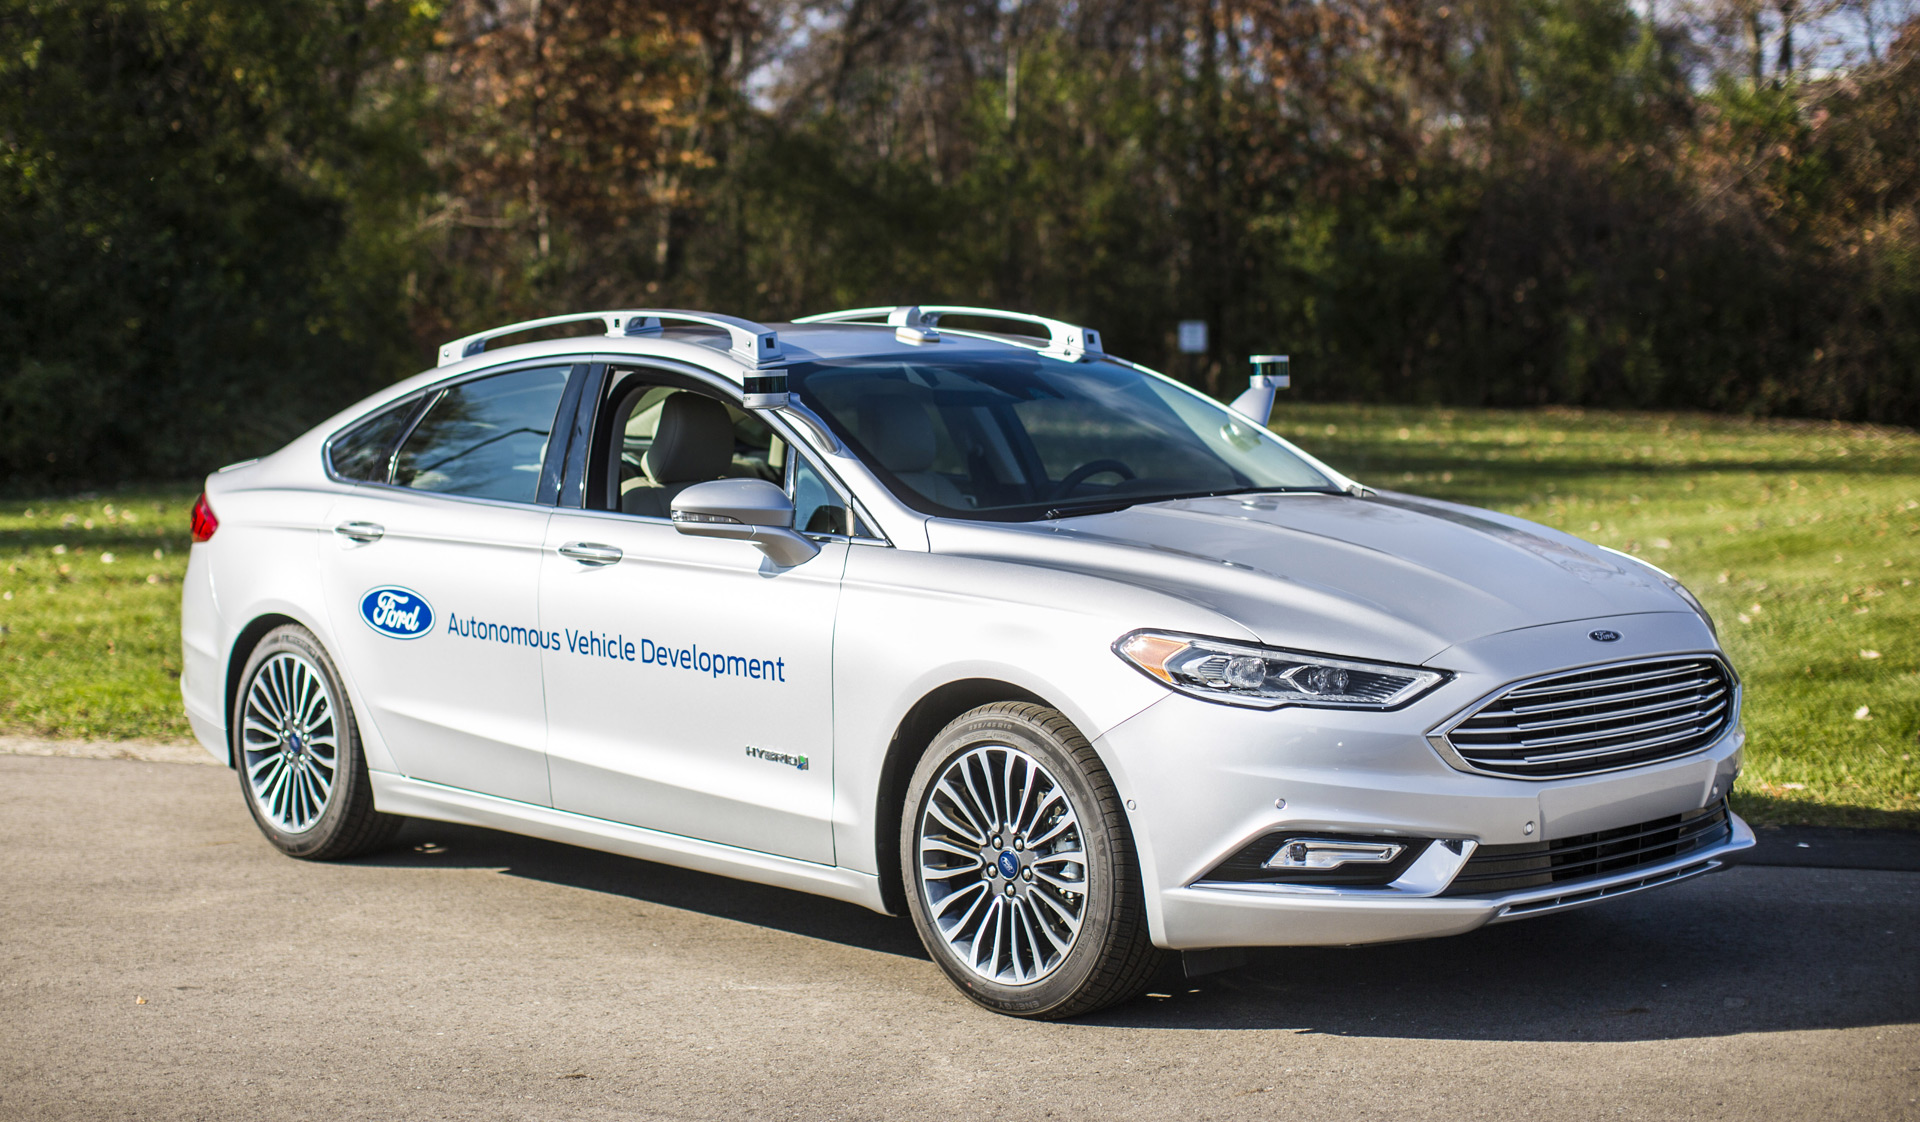 Ford will sell self driving taxi by 2021